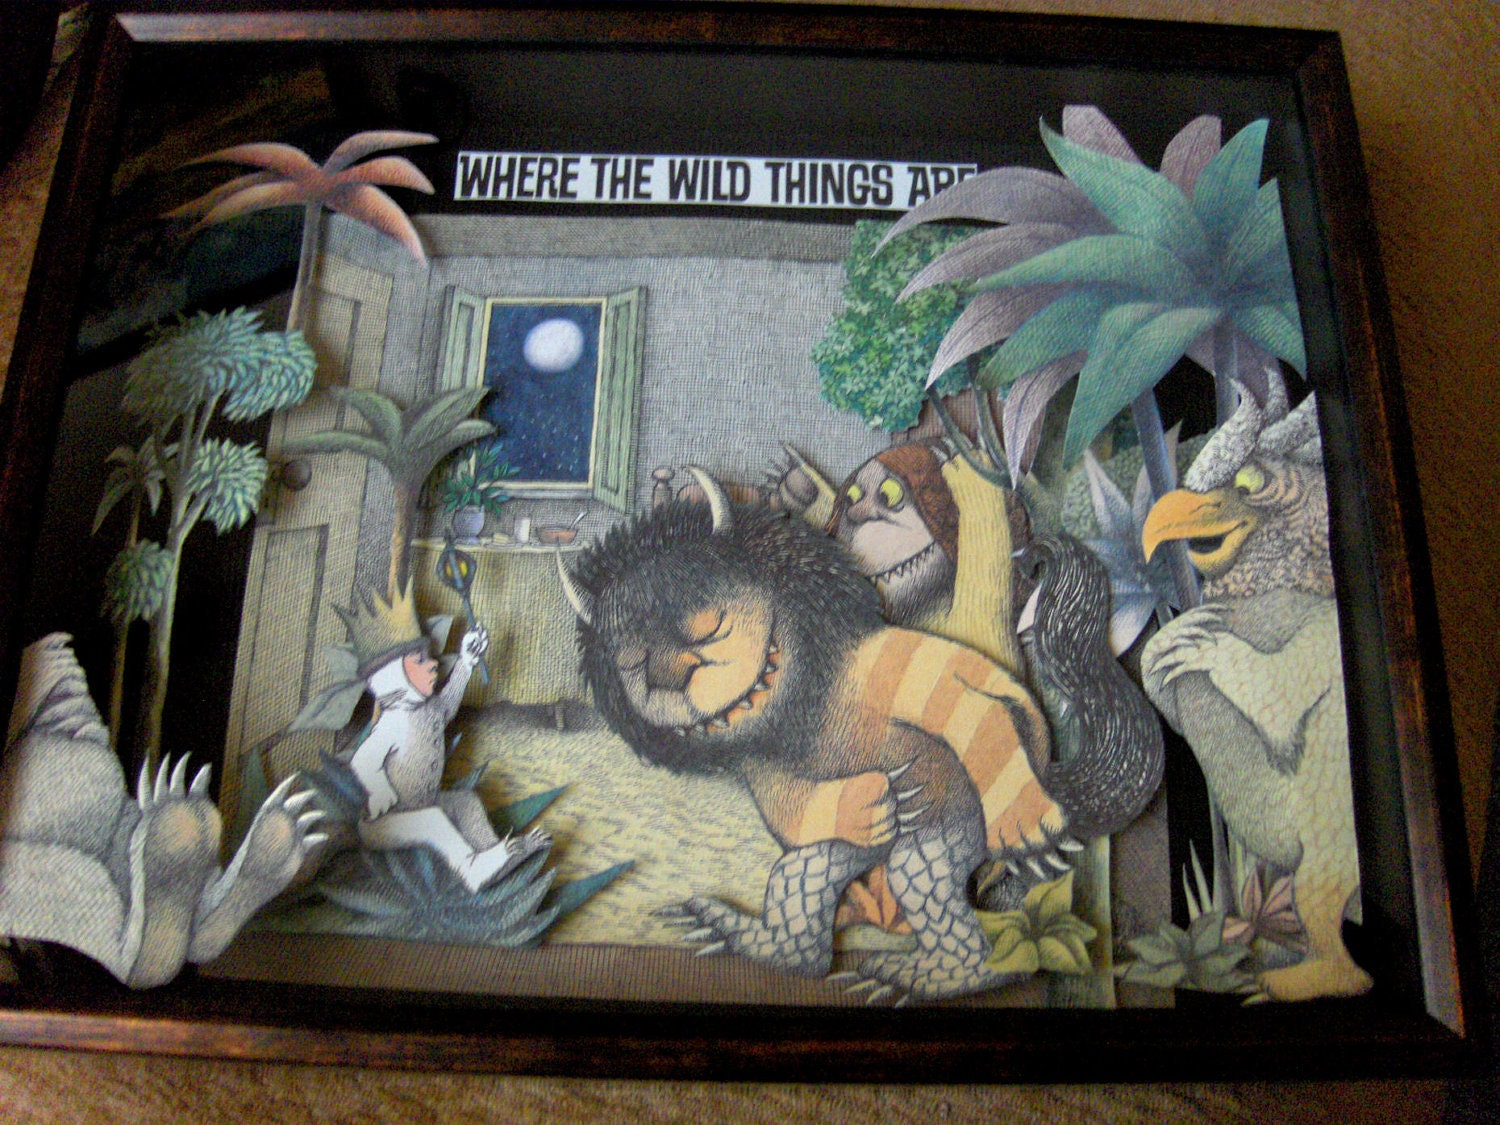 SALE - Where The Wild Things Are... - Collage of Rescued Illustrations - Altered Book Shadow Box Framed - FREE SHIPPING